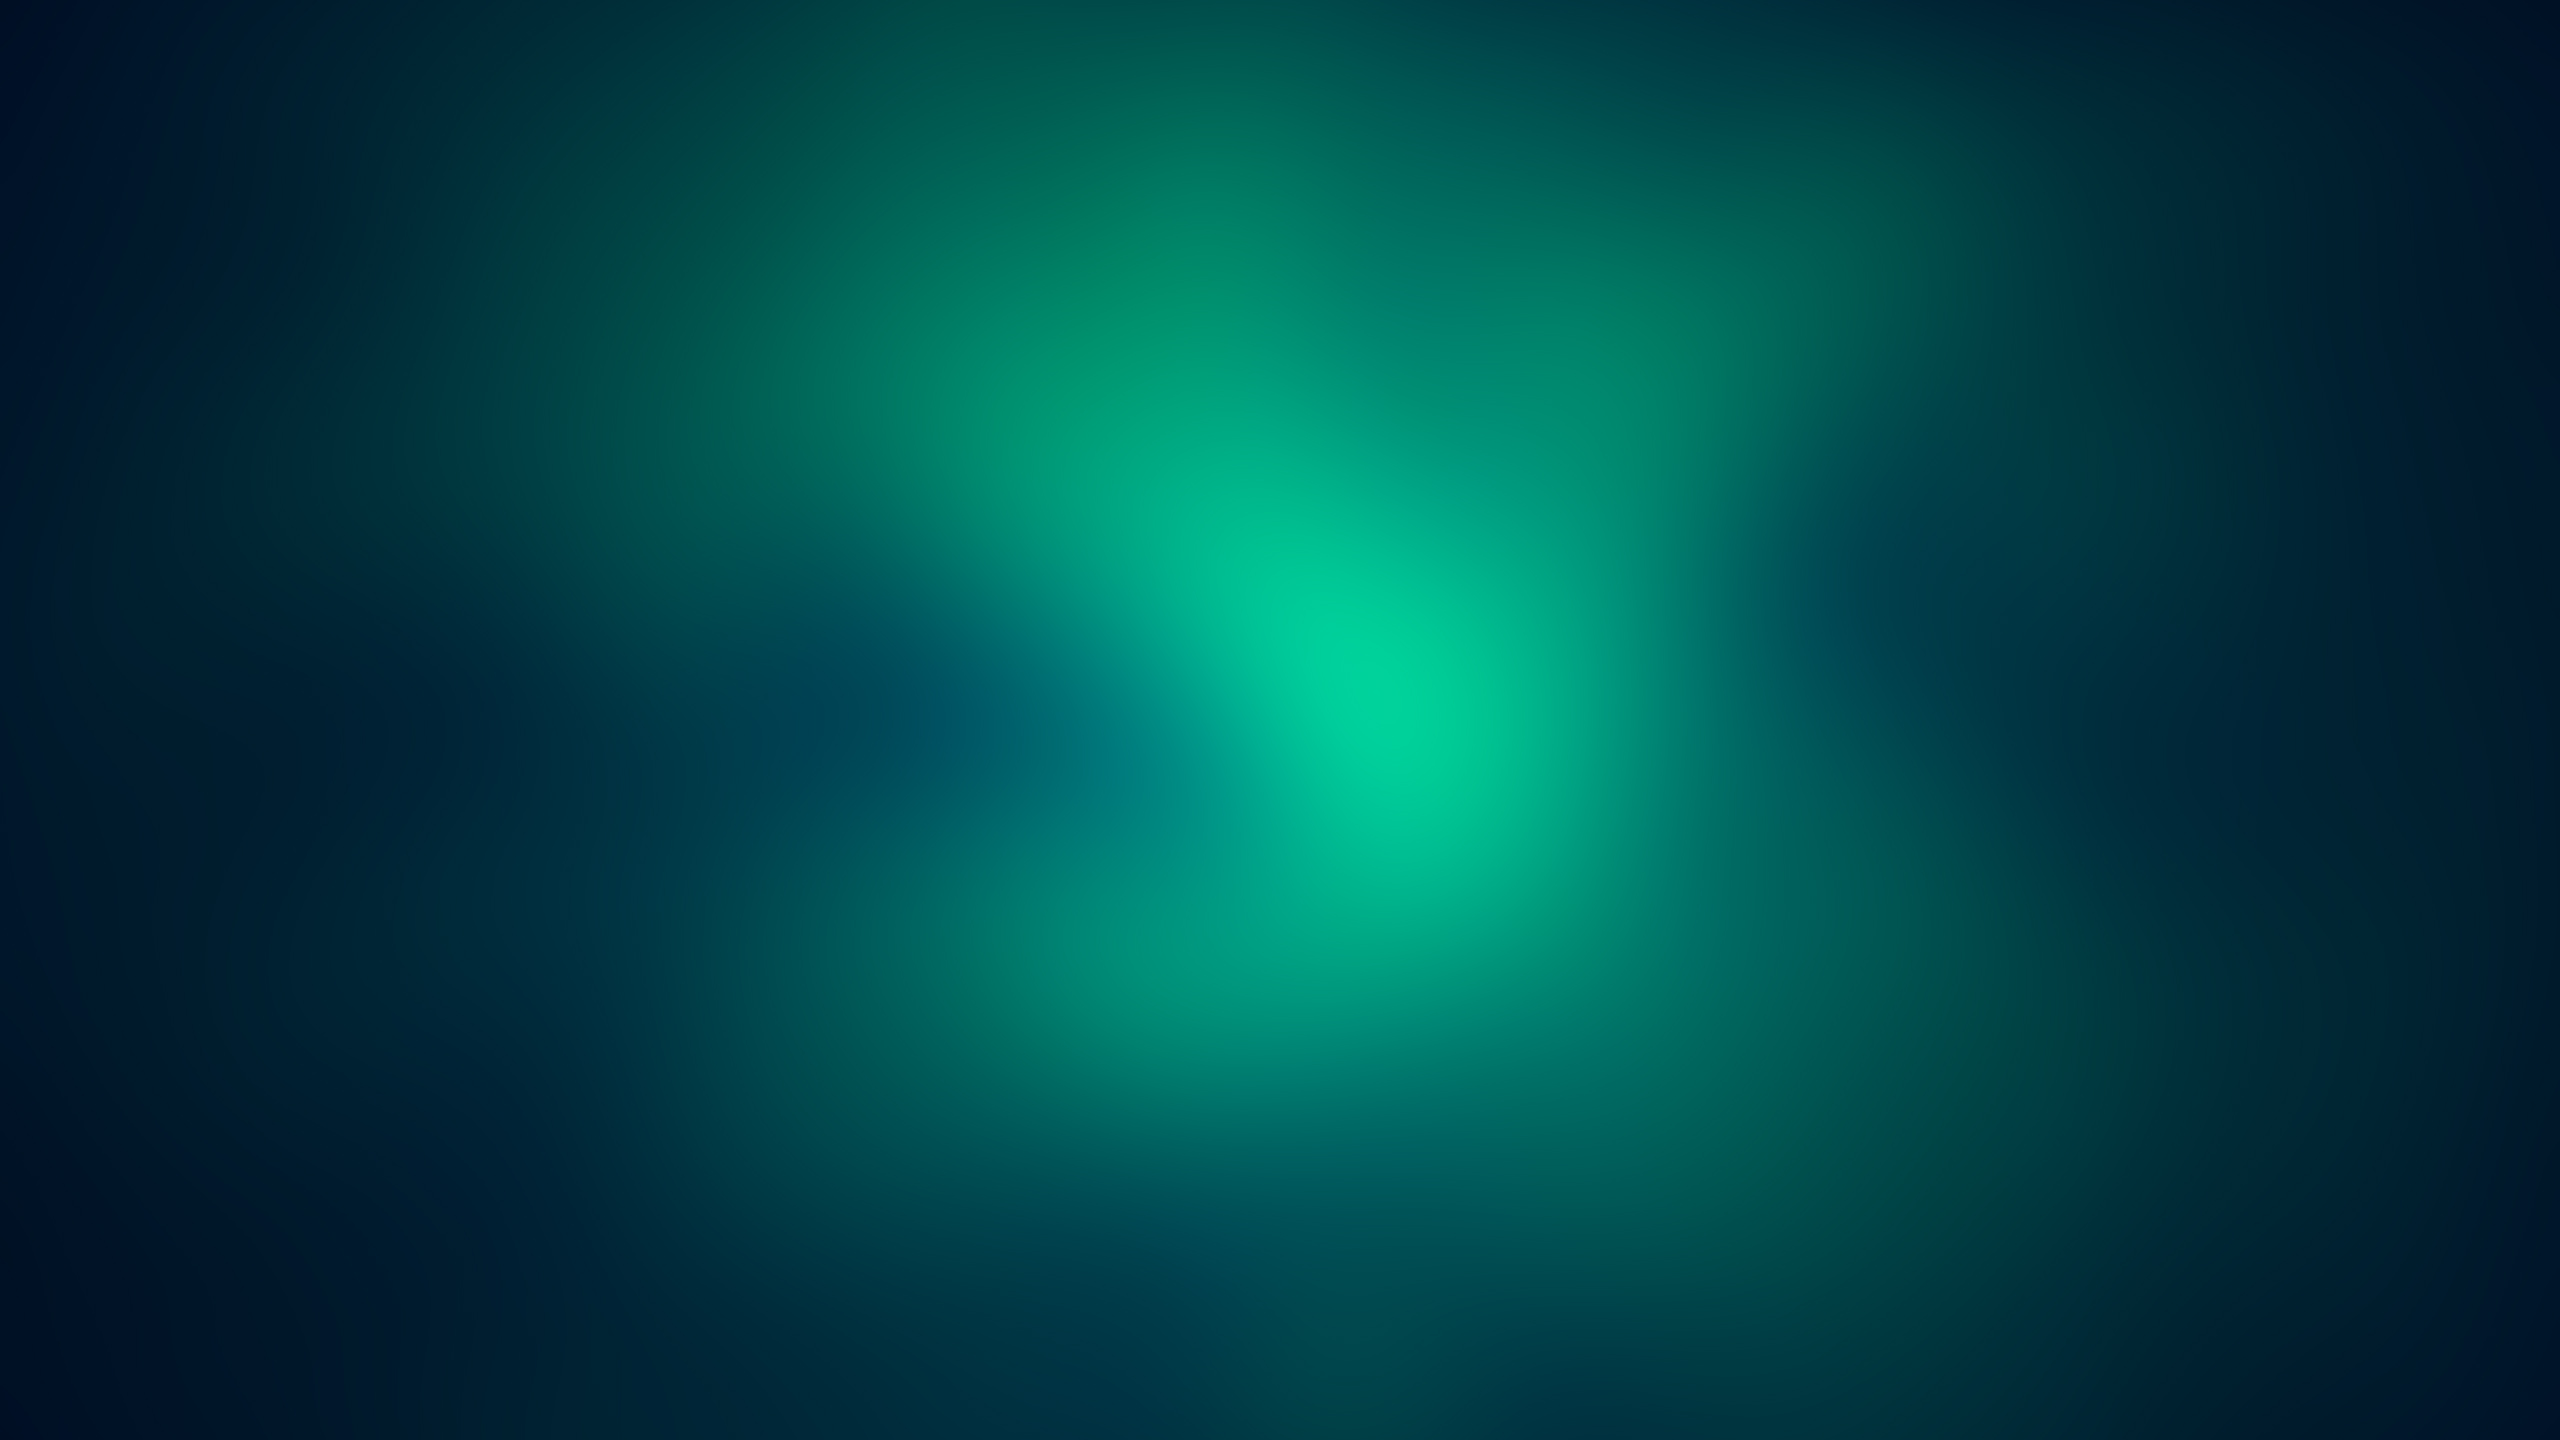 Teal Wallpaper Hd Abstract   blue wallpaper 2560x1440